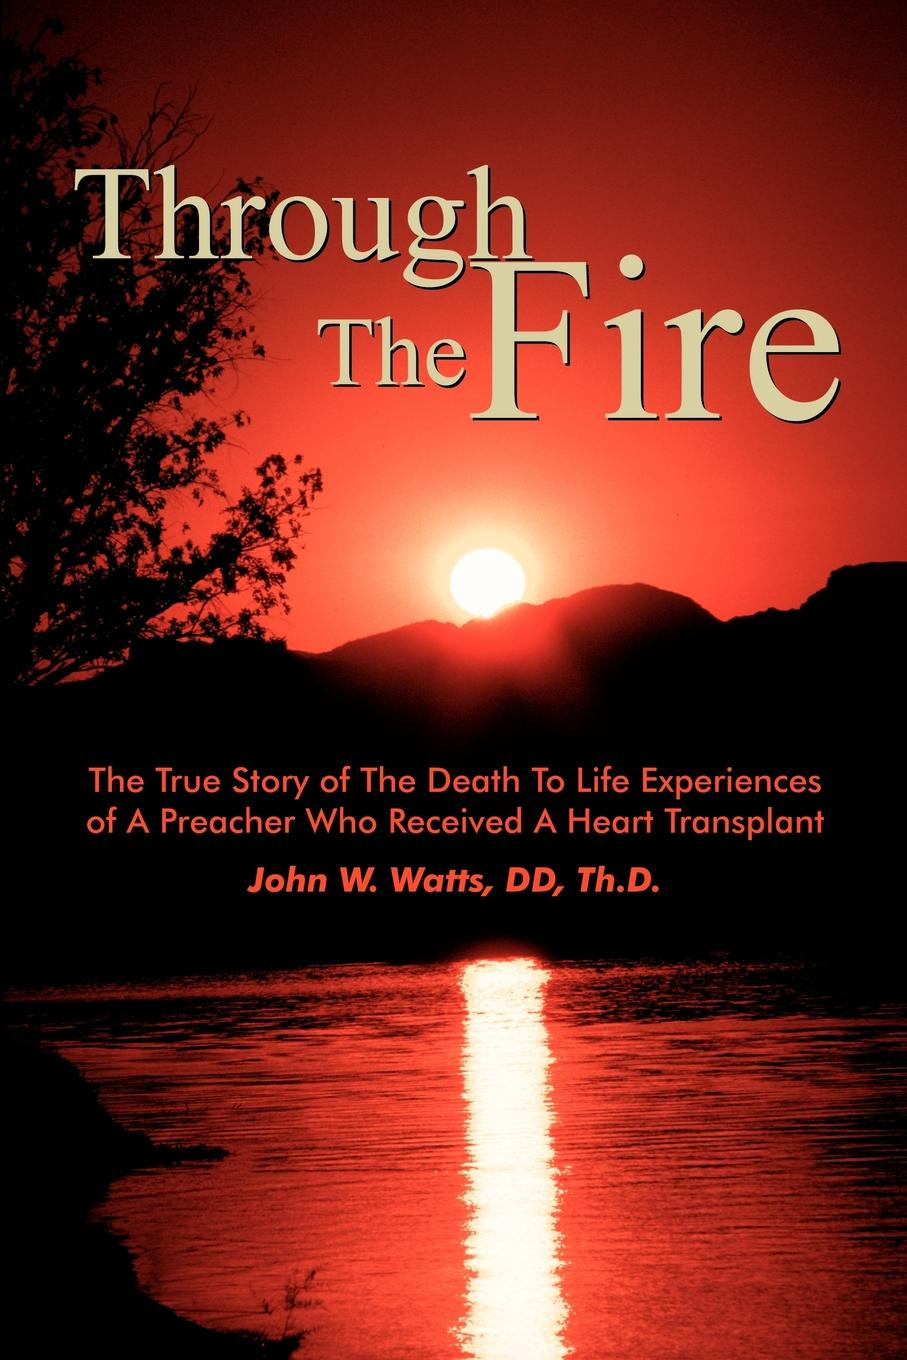 лучшая цена John W. Watts Through The Fire. The True Story of The Death To Life Experiences of A Preacher Who Recieved A Heart Transplant